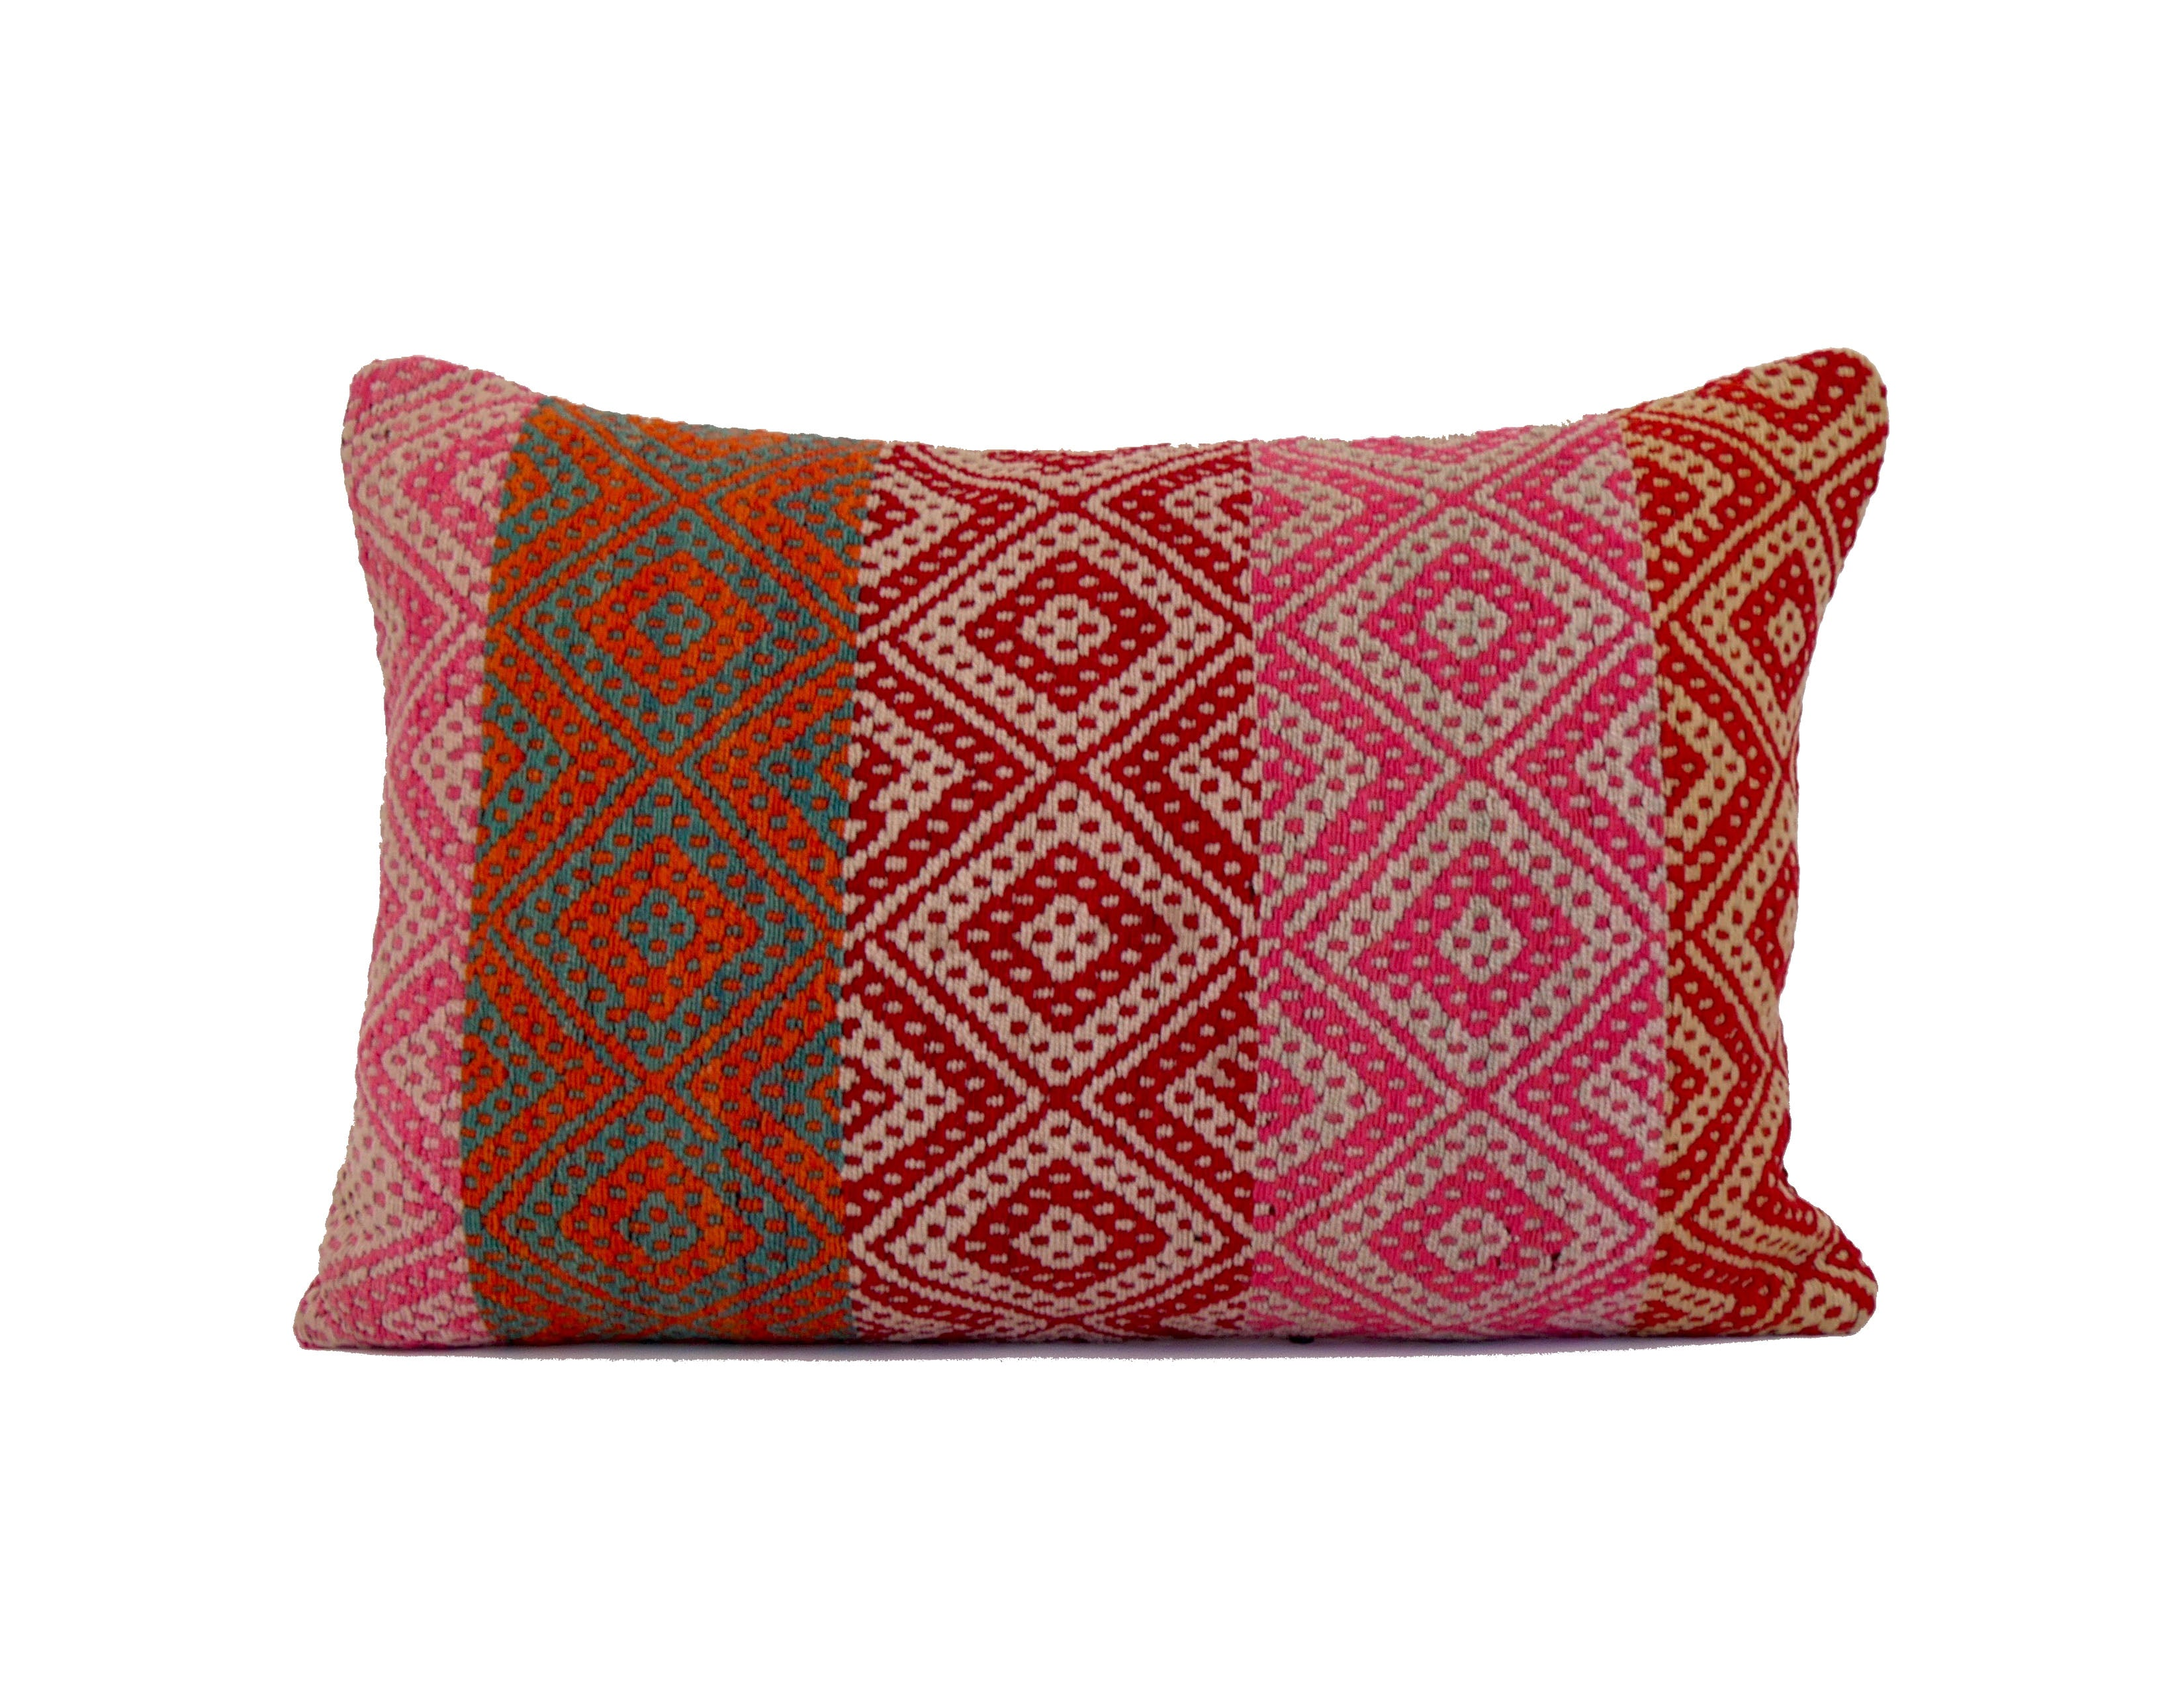 'I Stop For Red' Peruvian Frazada Lumbar Pillow